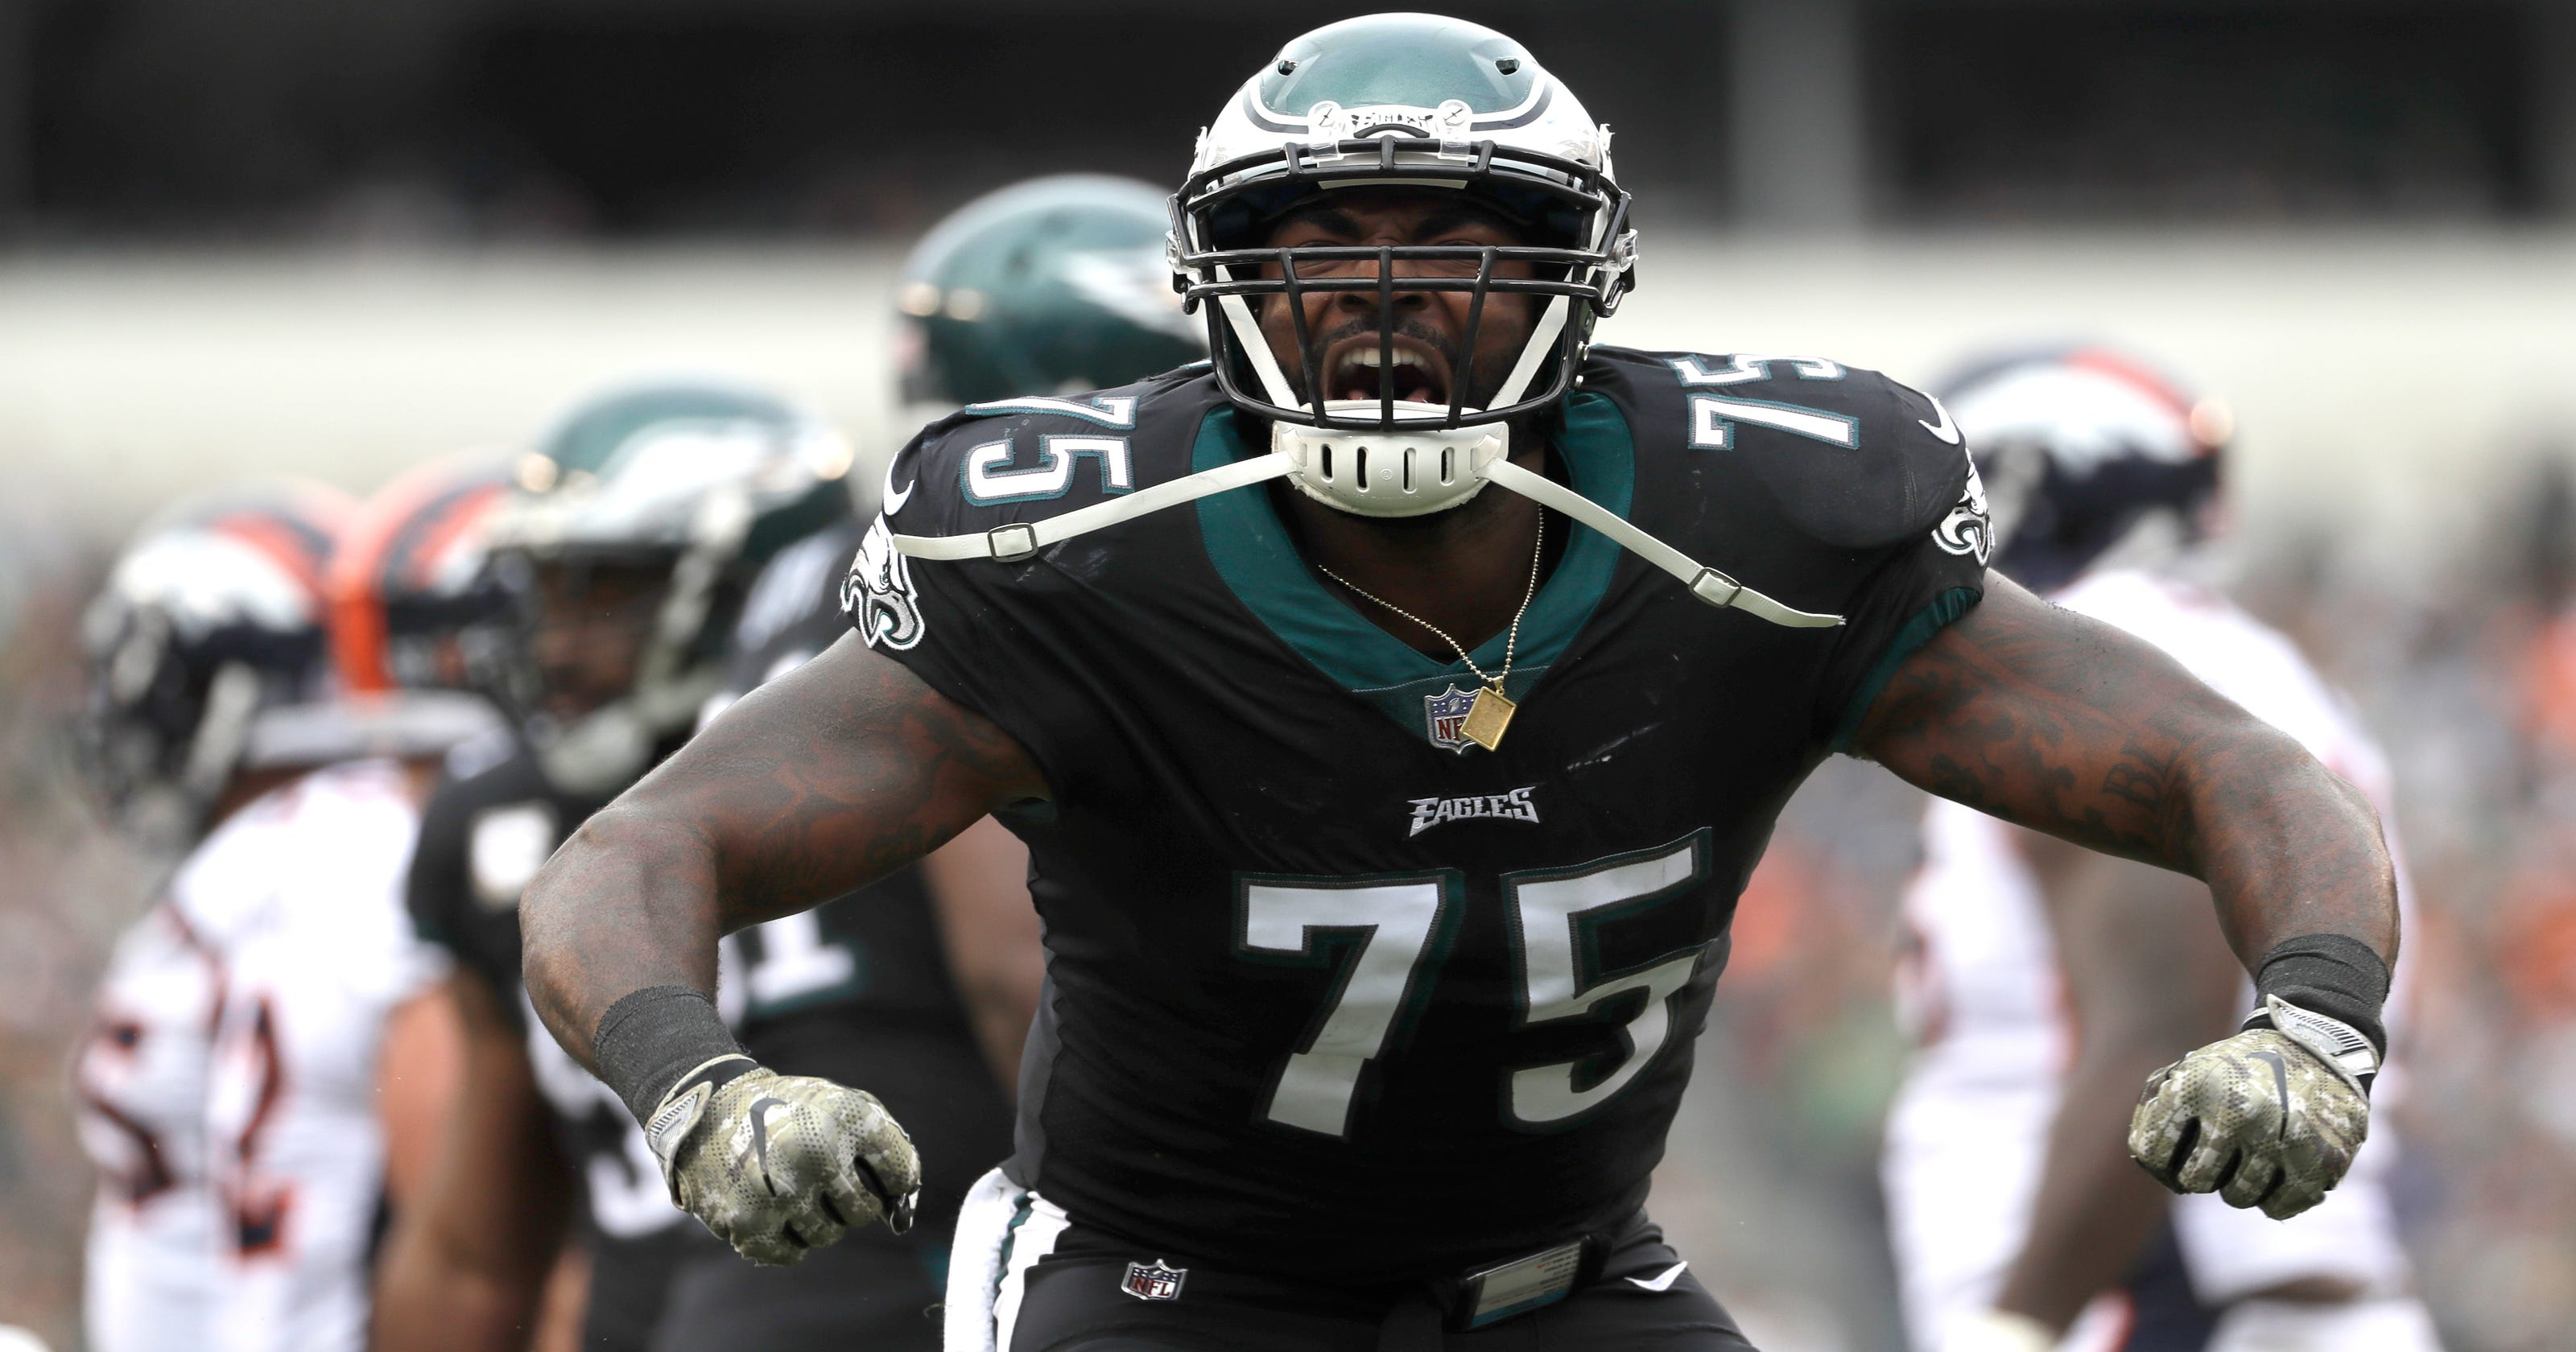 With a new coaching staff incoming and a defensive scheme changing the Tampa Bay Buccaneers have cut DE Vinny Curry the team announced Tuesday